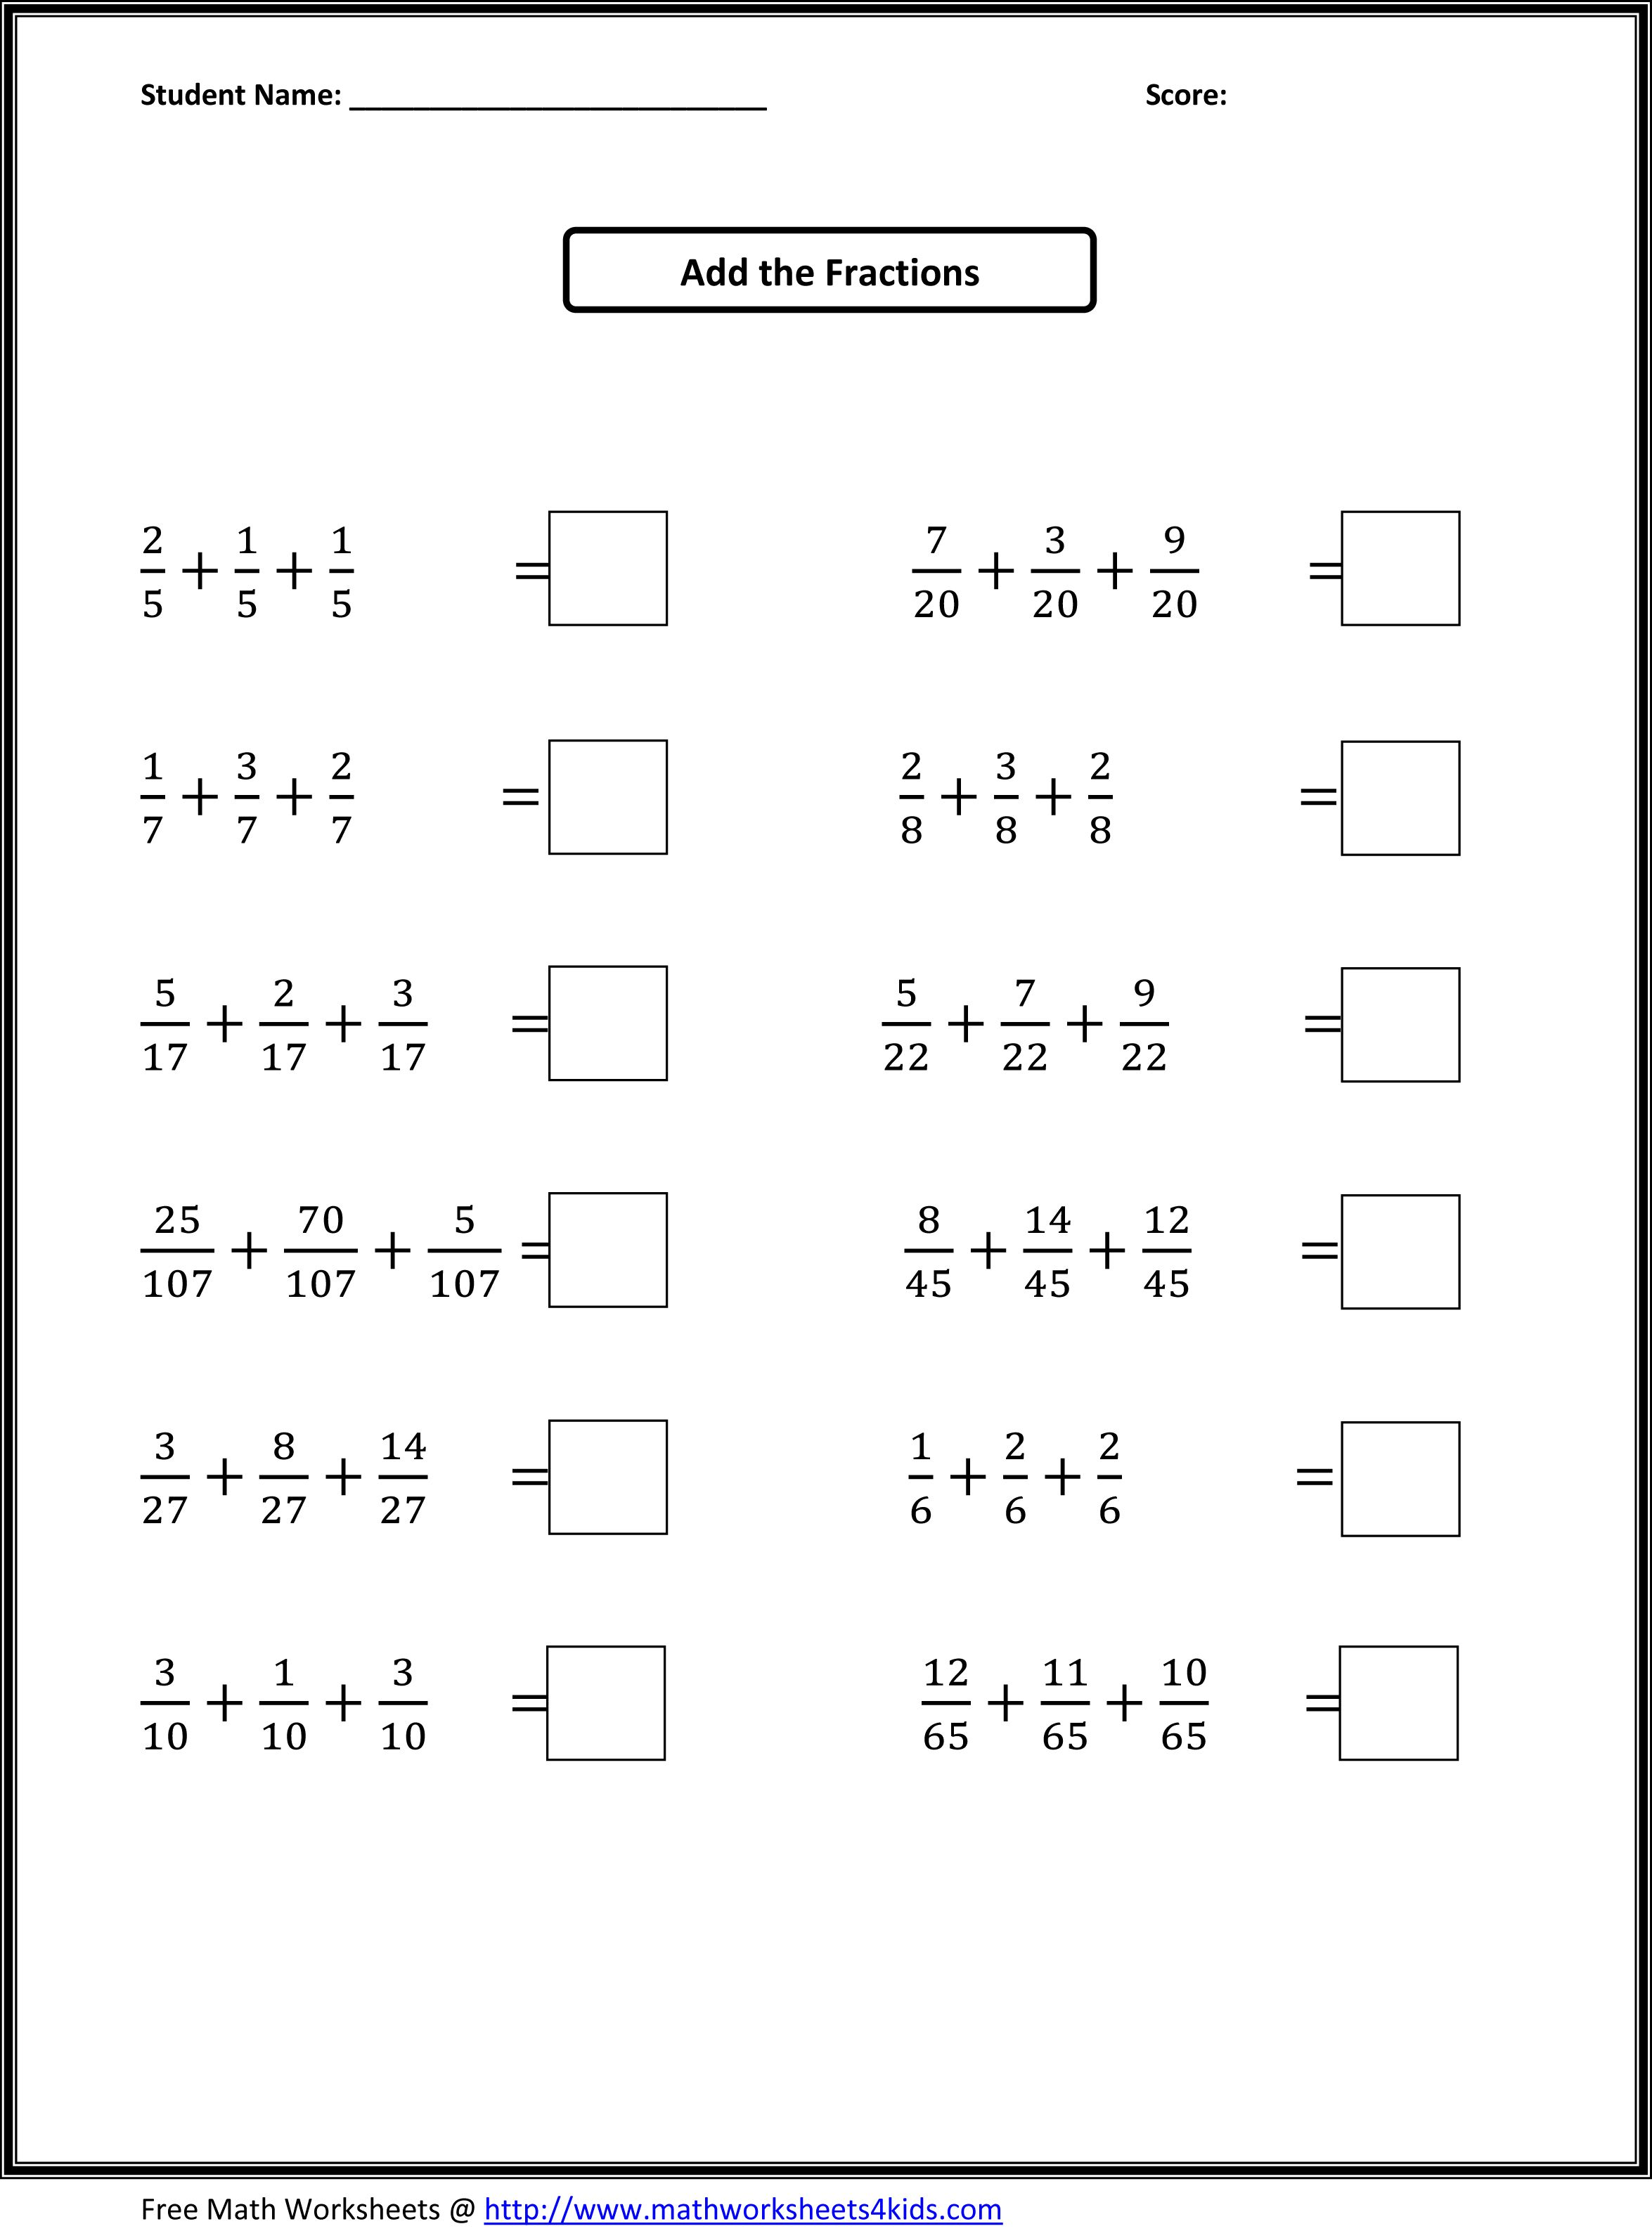 Uncategorized 4th Grade Math Test Prep Worksheets worksheets for all early ed grades topics of math math